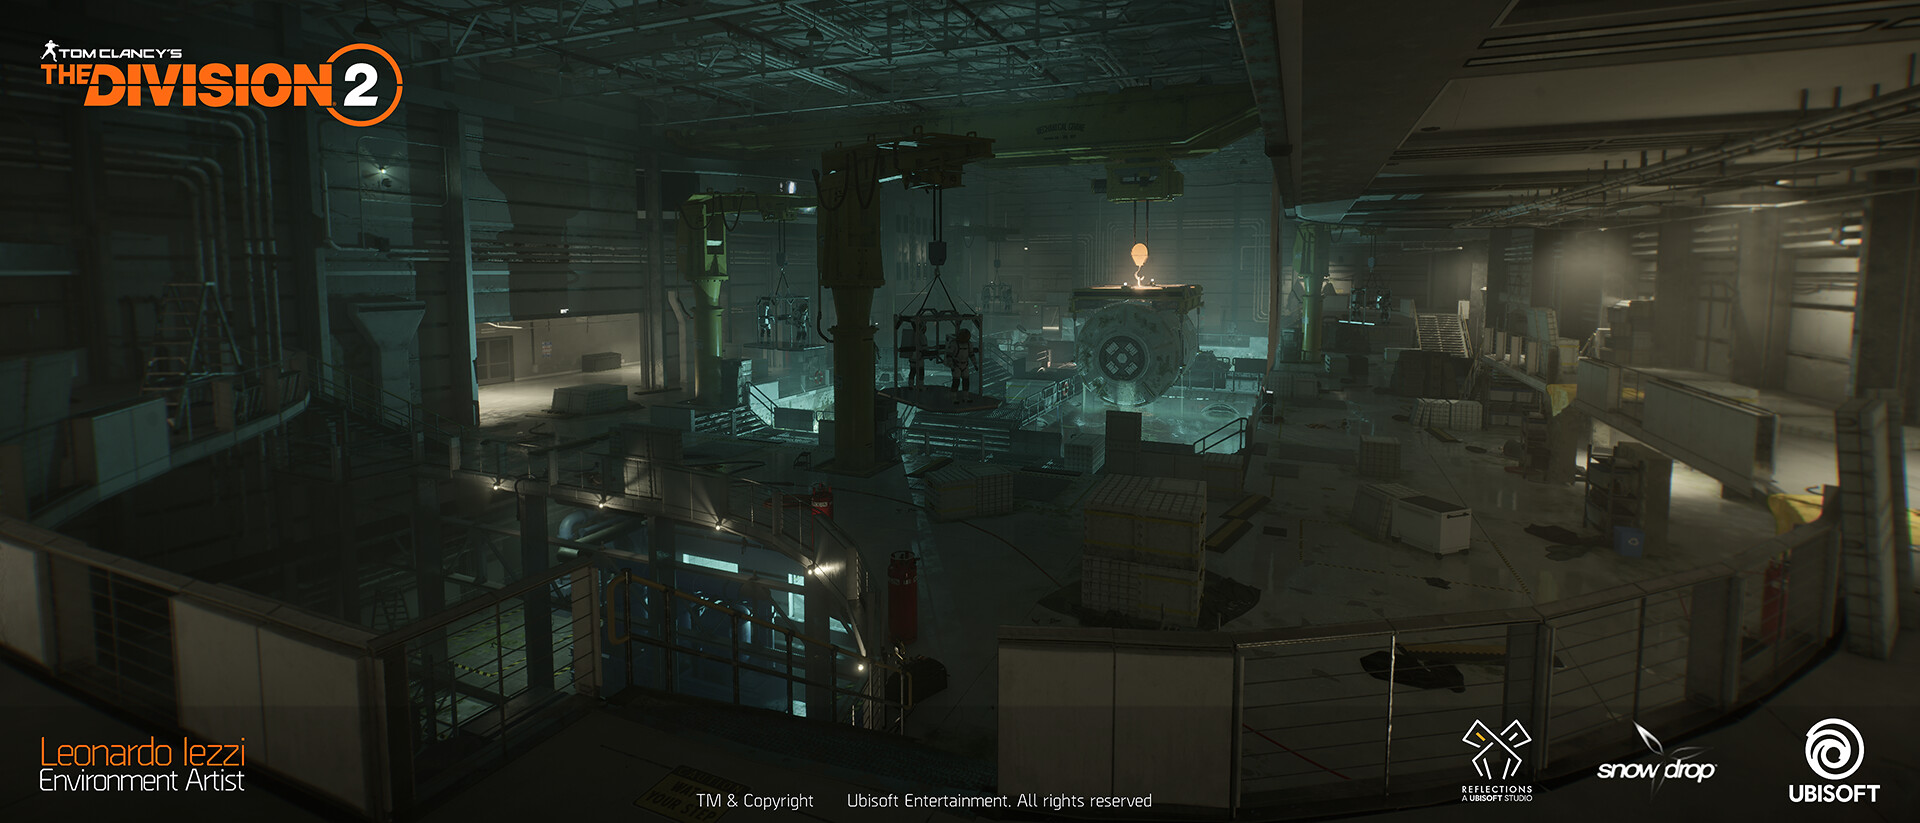 Leonardo iezzi leonardo iezzi the division 2 environment art 06 buoyancy 018 wide